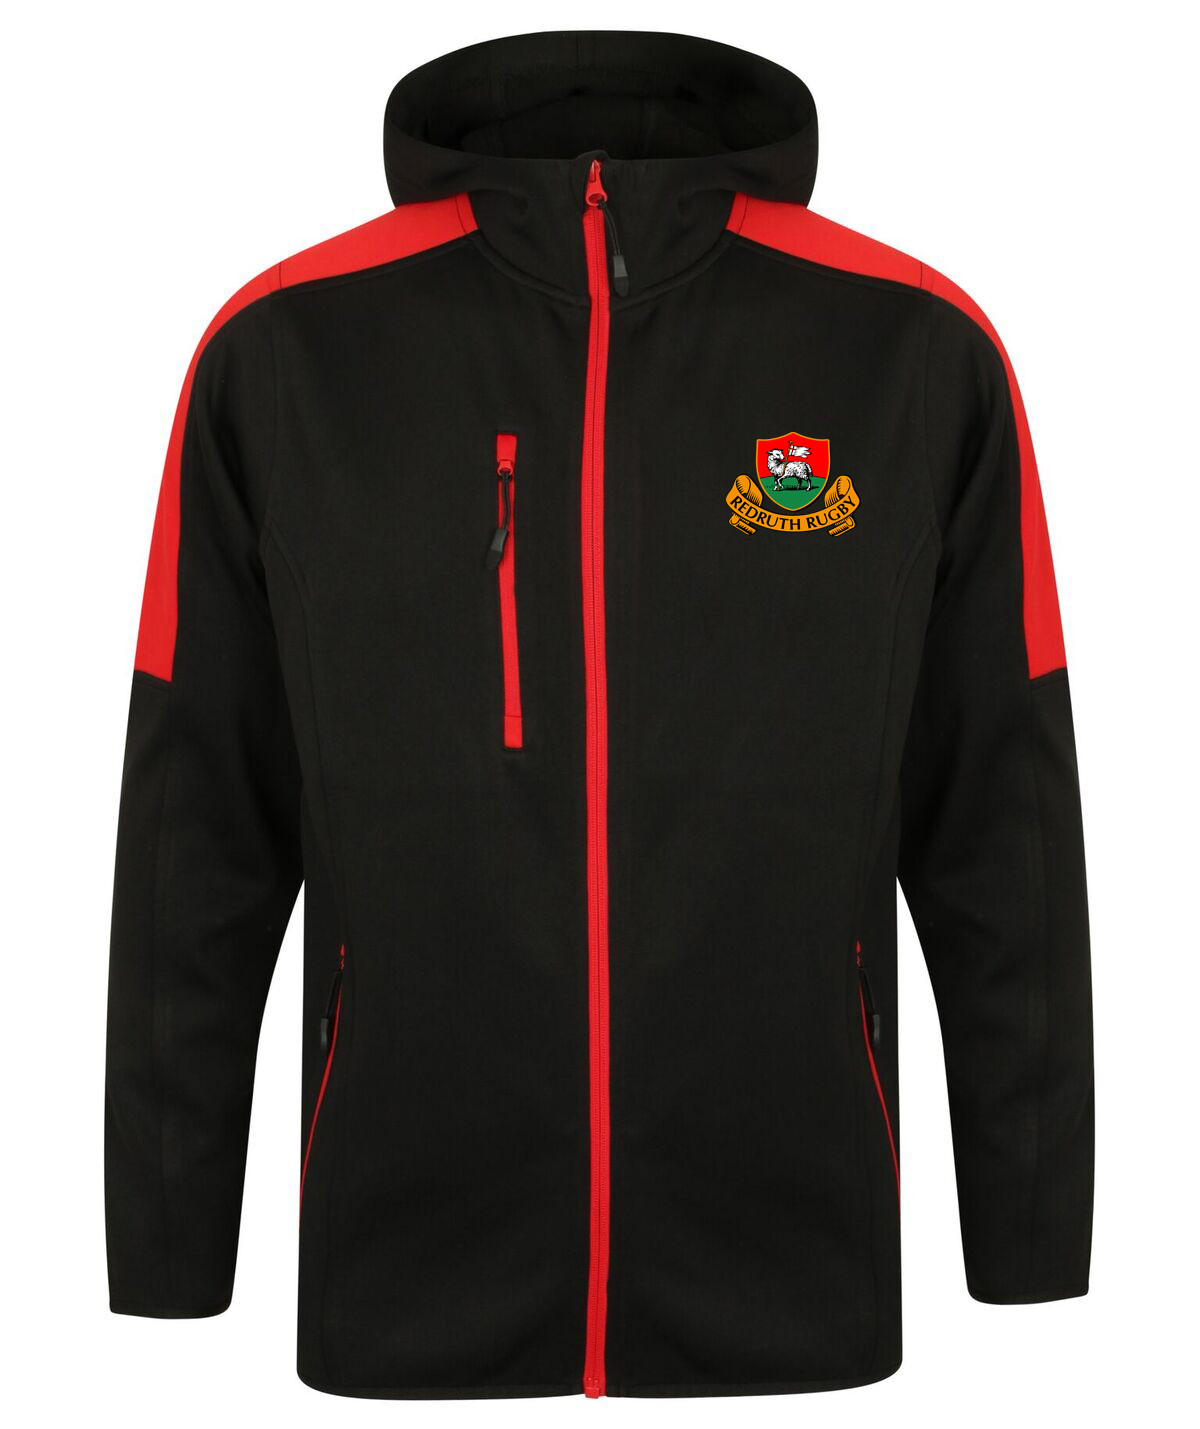 Redruth 2017-18 Supporters Hoodie